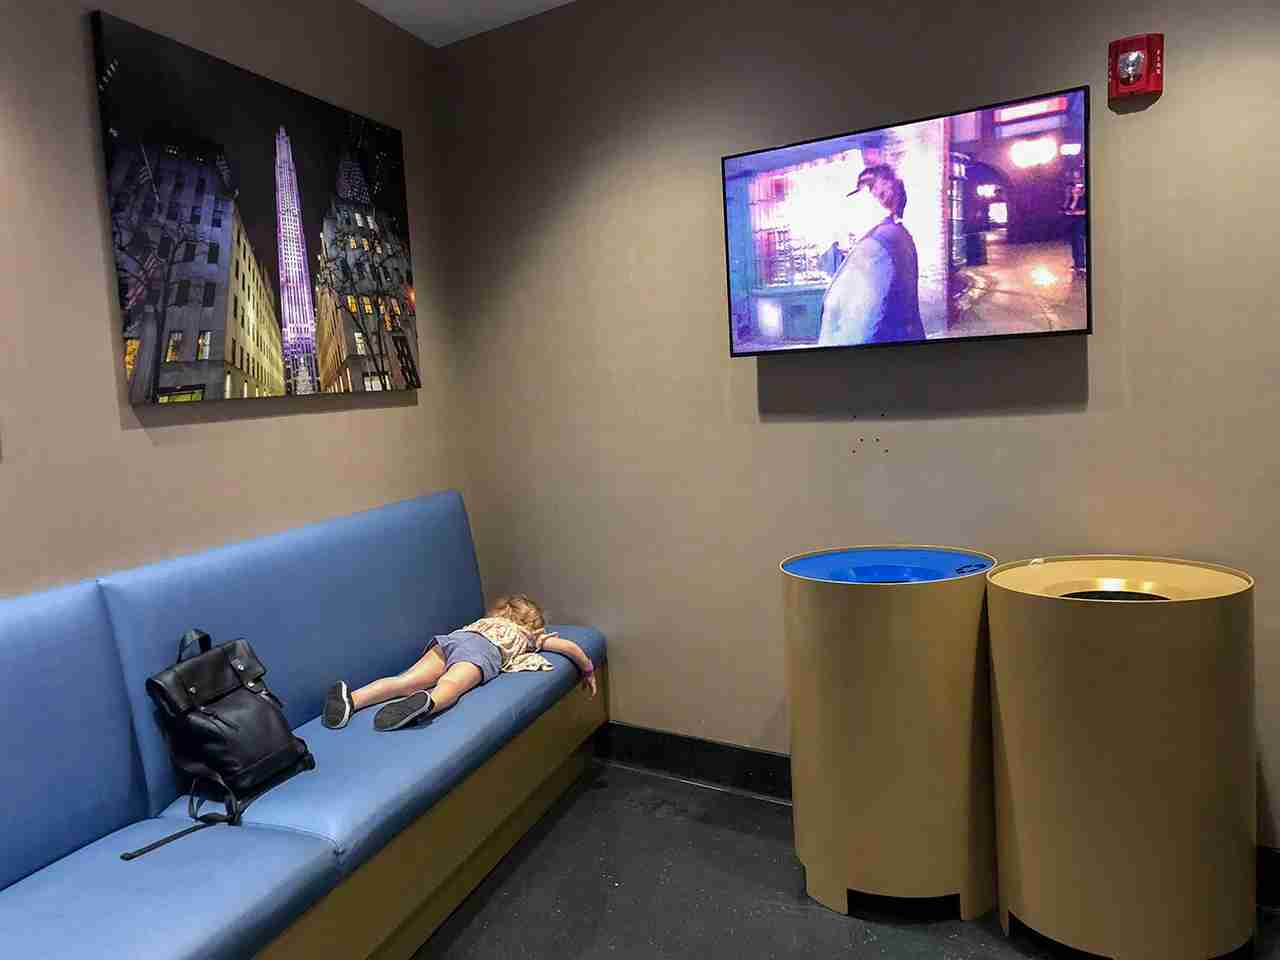 Universal child waiting rooms (Summer Hull / The Points Guy)